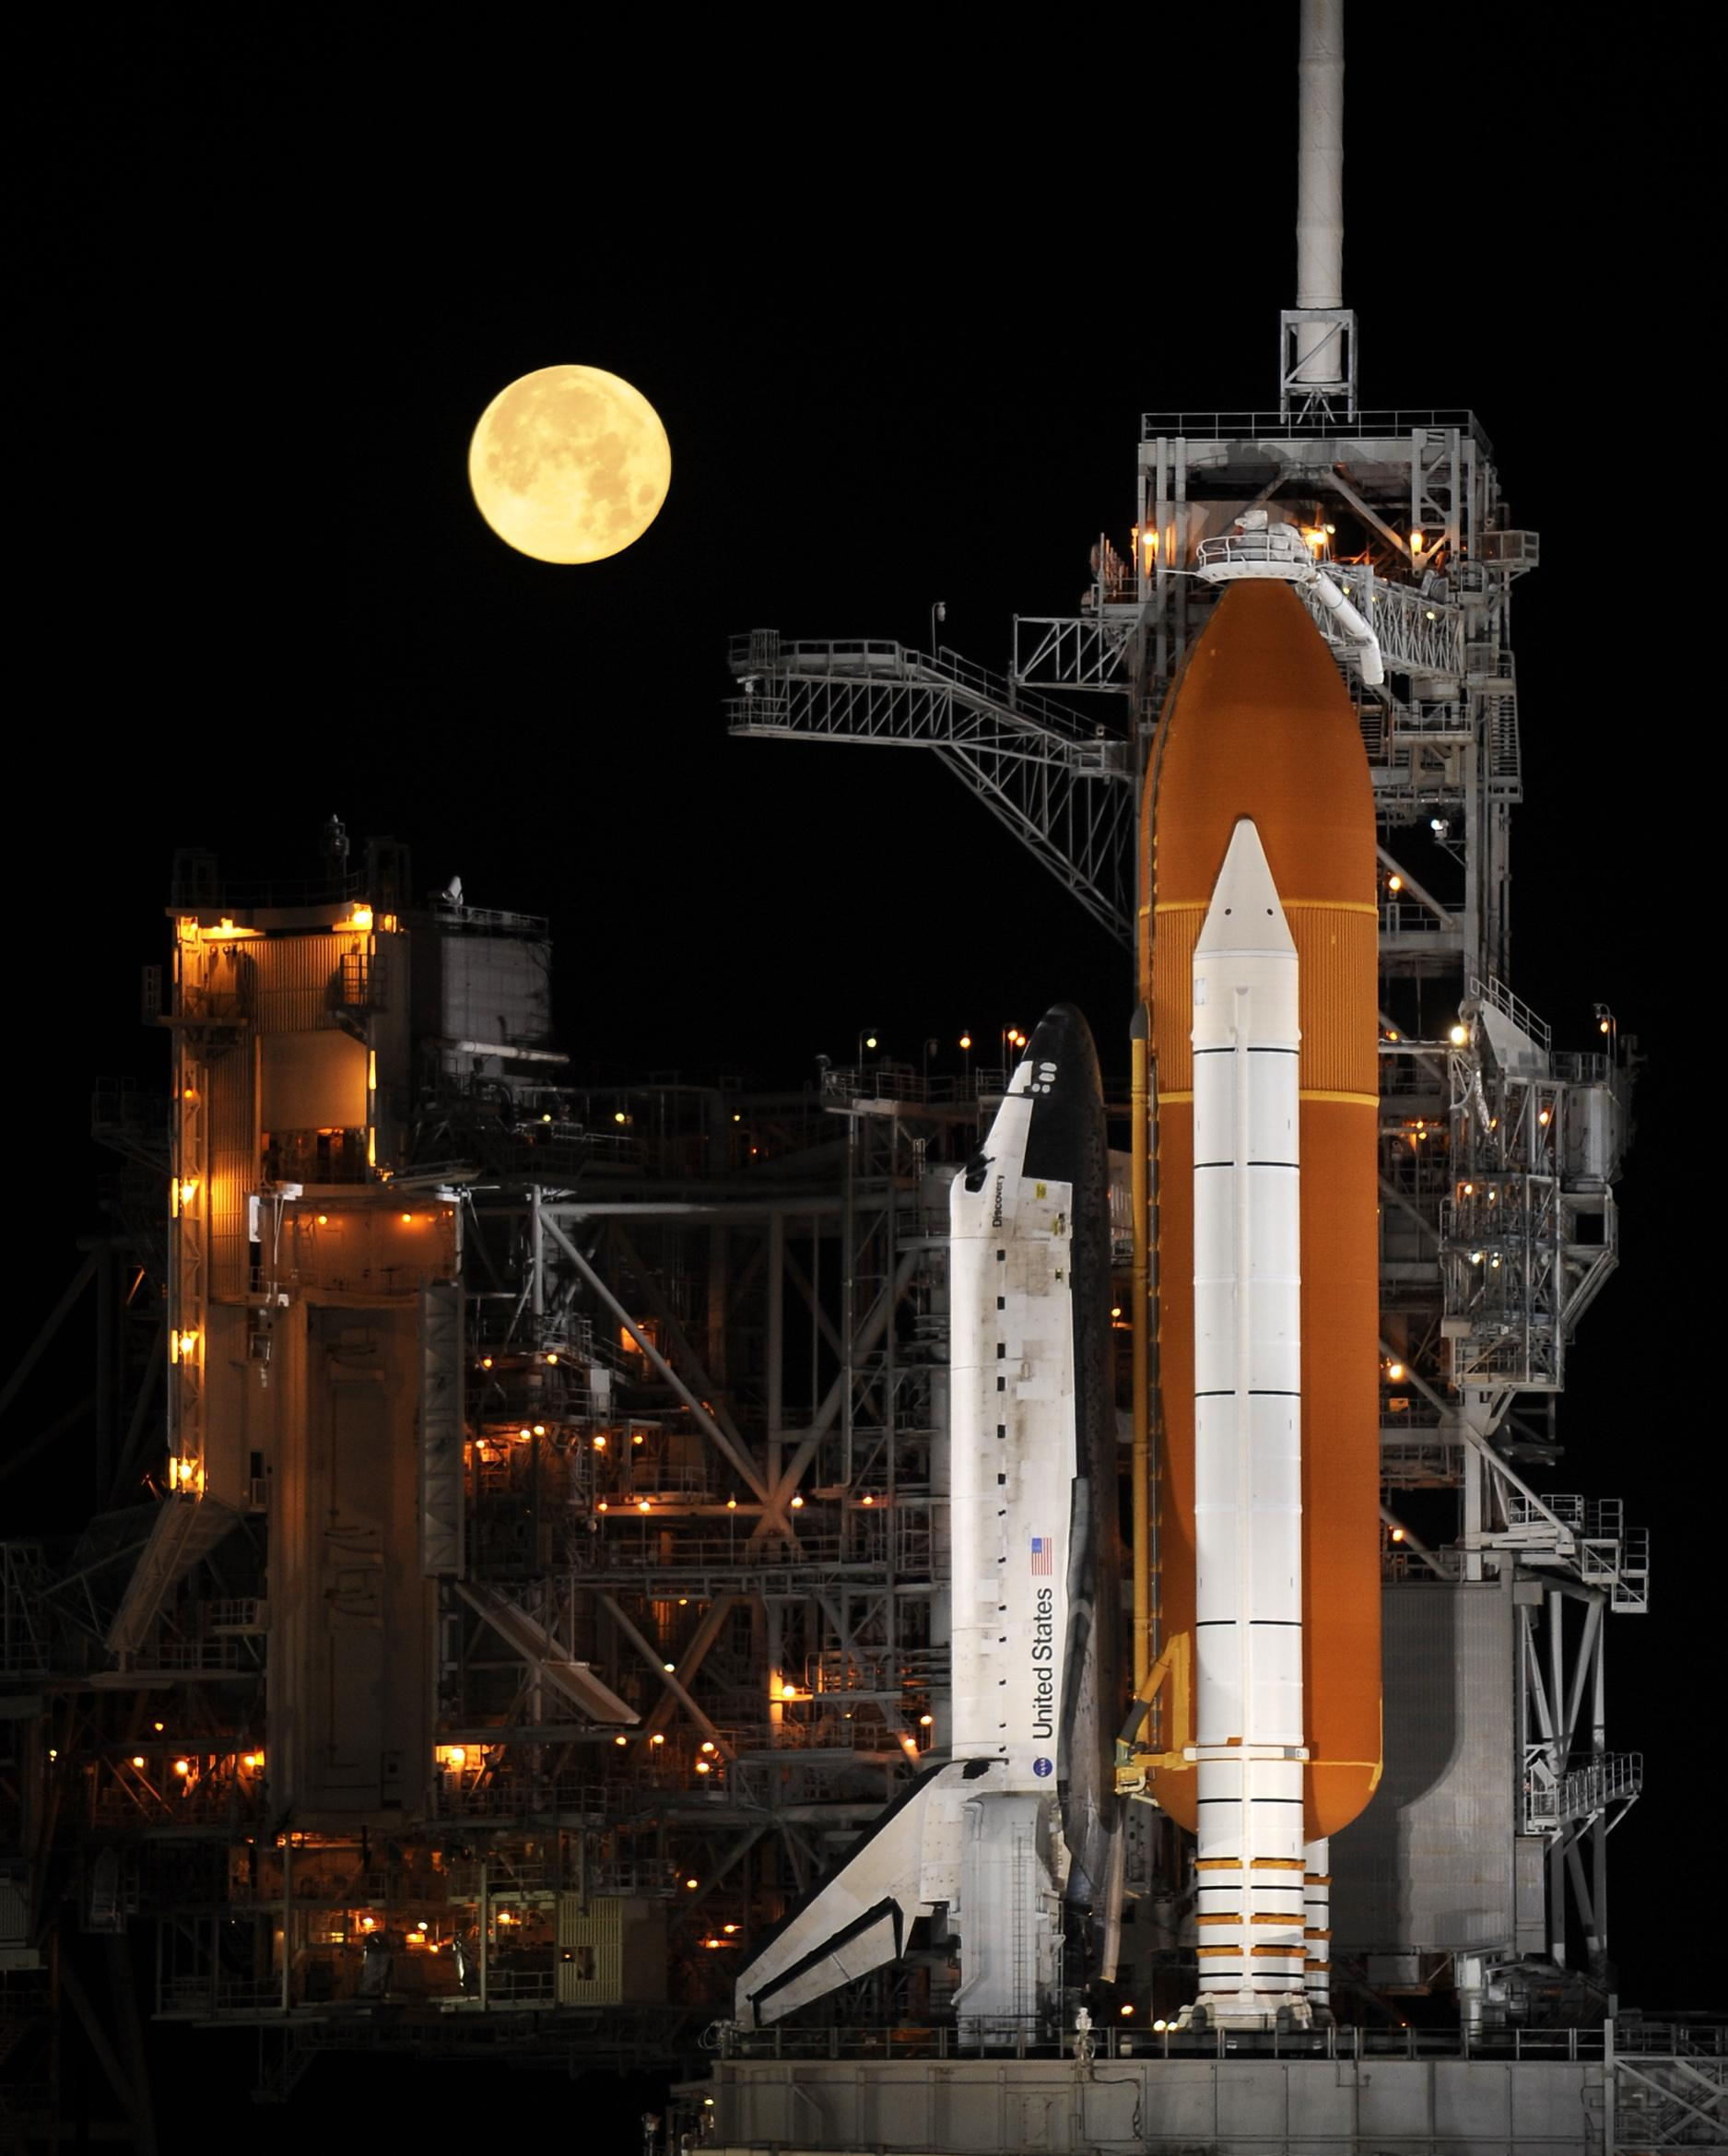 File:Space Shuttle Discovery under a full moon, 03-11-09.jpg ...